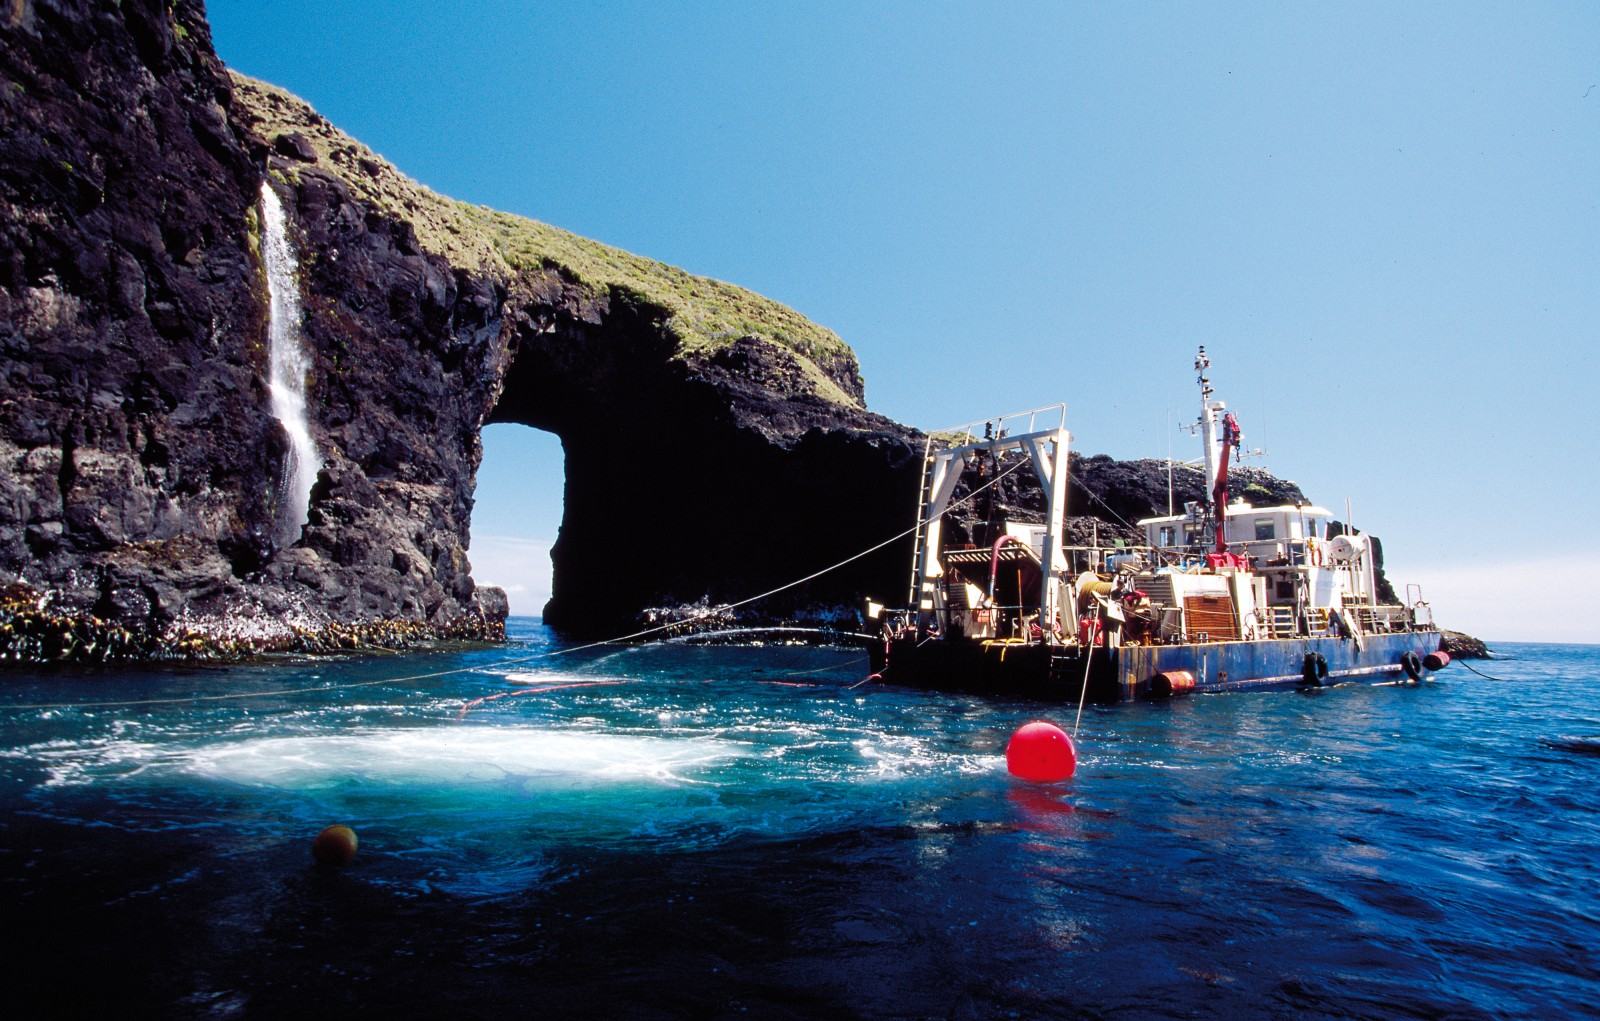 The Seawatch on station. Due to its exposure to violent subantarctic westerly weather systems, diving on the Rifleman wreck site was possible on only one day in four. The site, about halfway down Auckland Island's rugged west coast, was a mere notch in vertical cliffs, connecting to the sea through an archway (pictured) and a narrow entrance. While some aspects of the site corresponded with survivors' descriptions of the General Grant wreck site—there was a cave within the small cove—none of them mentioned an archway or a waterfall.